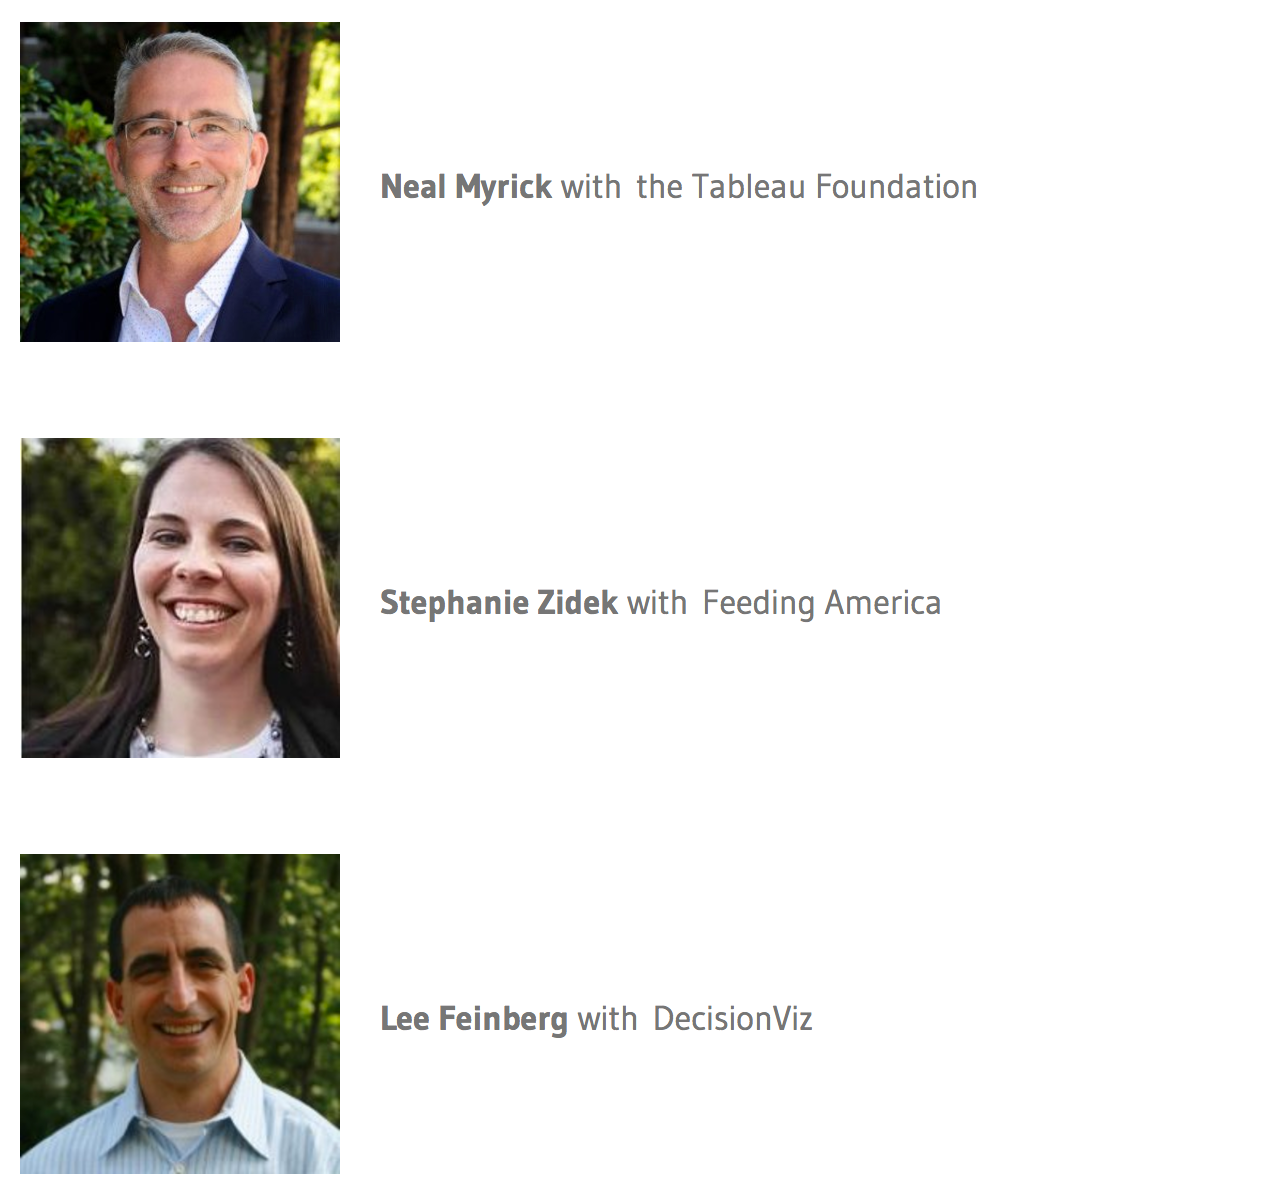 This image of the list of webinar speakers includes: Neal Myrick with the Tableau Foundation, Stephanie Zidek with Feeding America, and Lee Feinberg with DecisionViz.